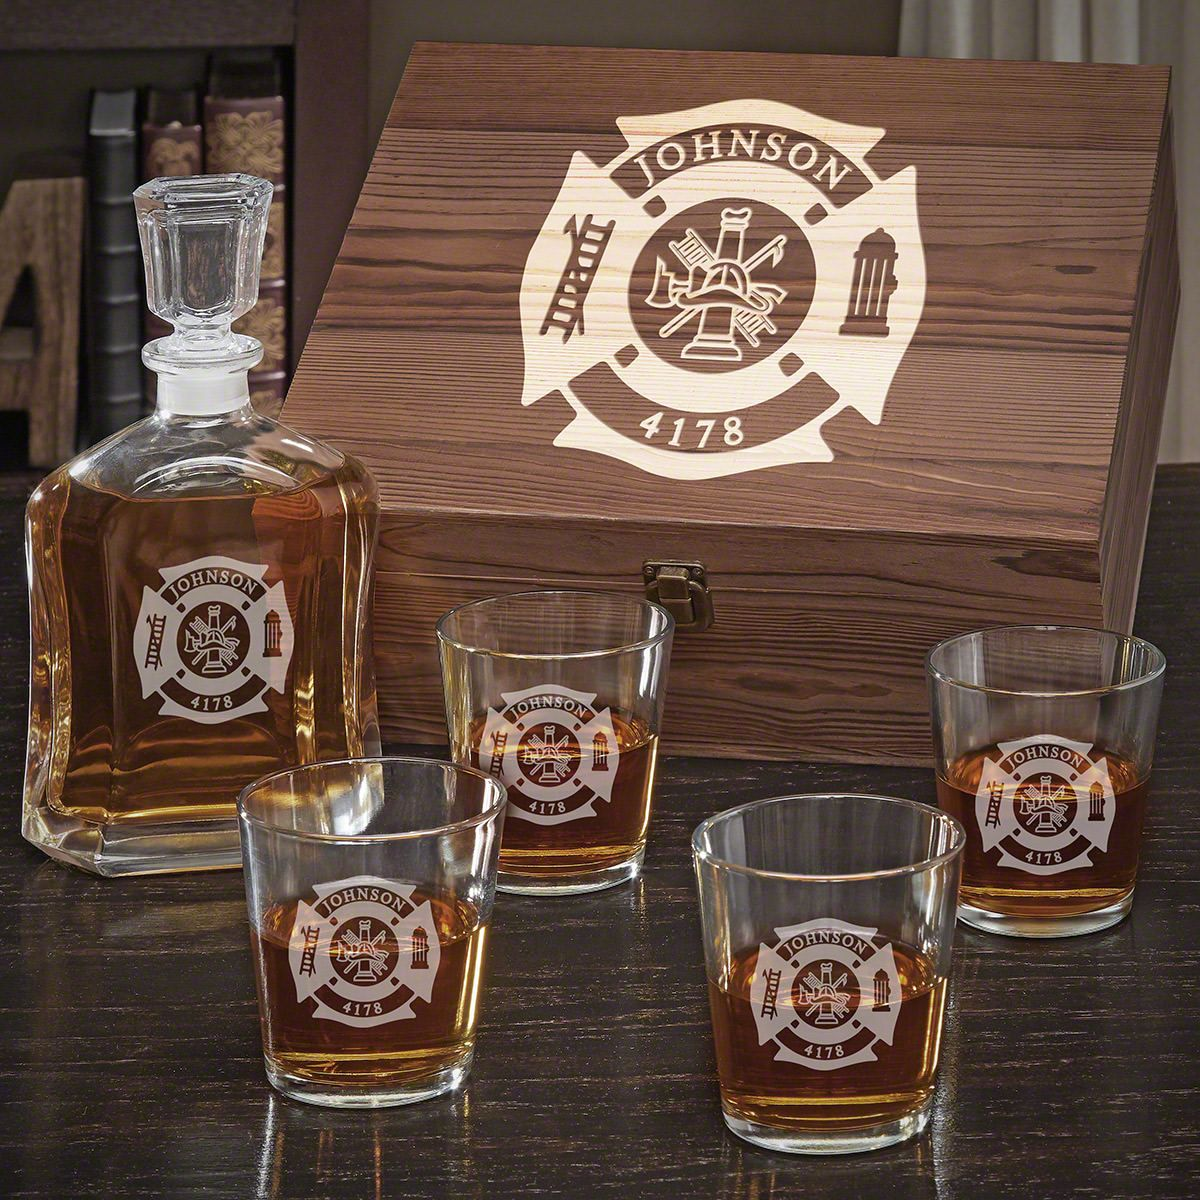 Fire & Rescue Personalized Argos Decanter Whiskey Set with On the Rocks Glasses - Gift for Firefighters